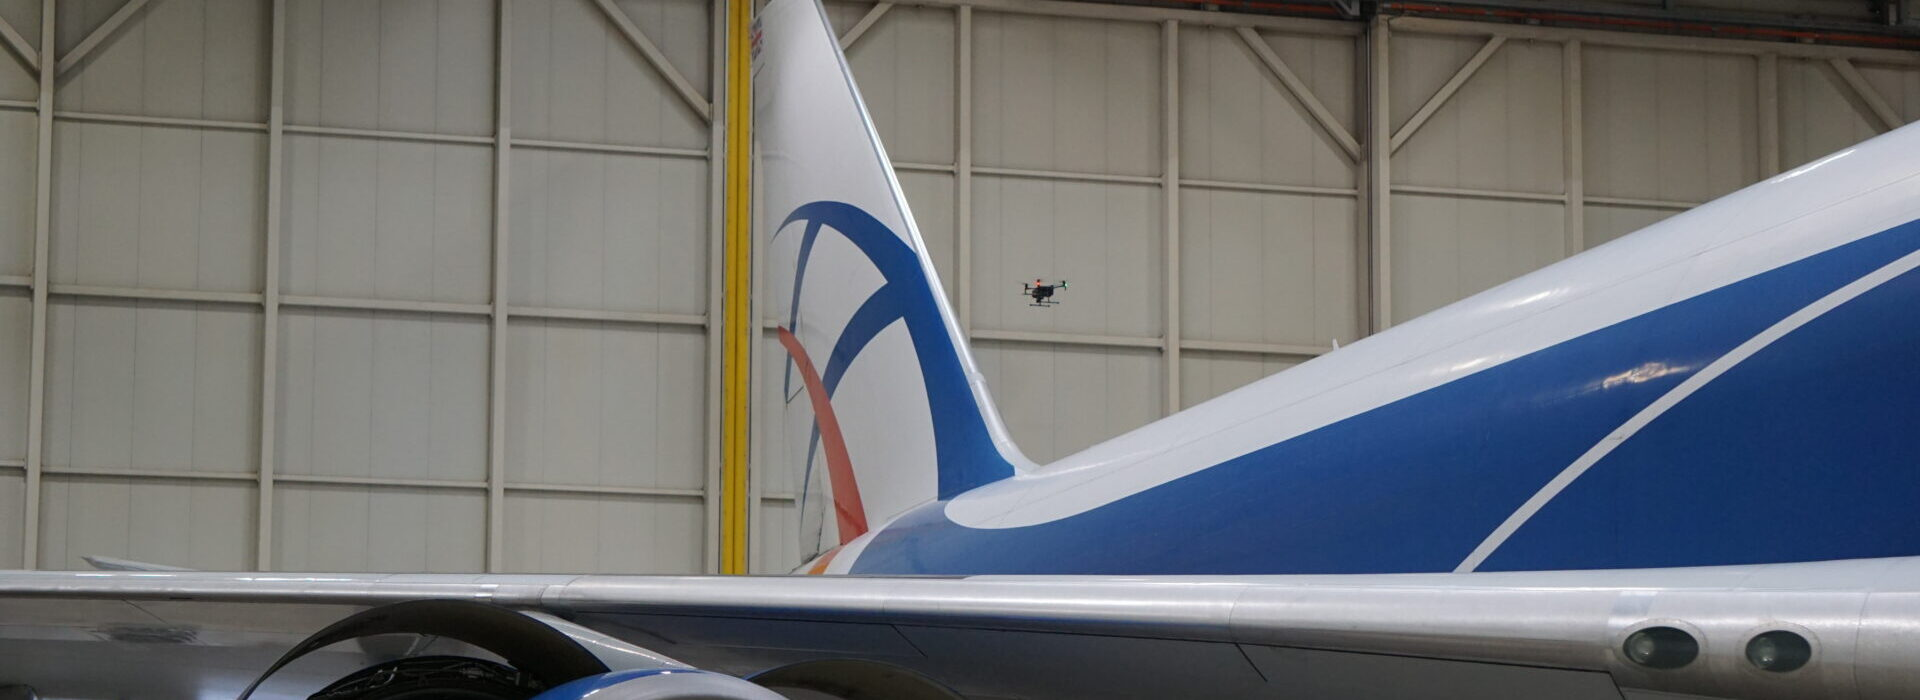 aircraft drone inspection demo in schipol